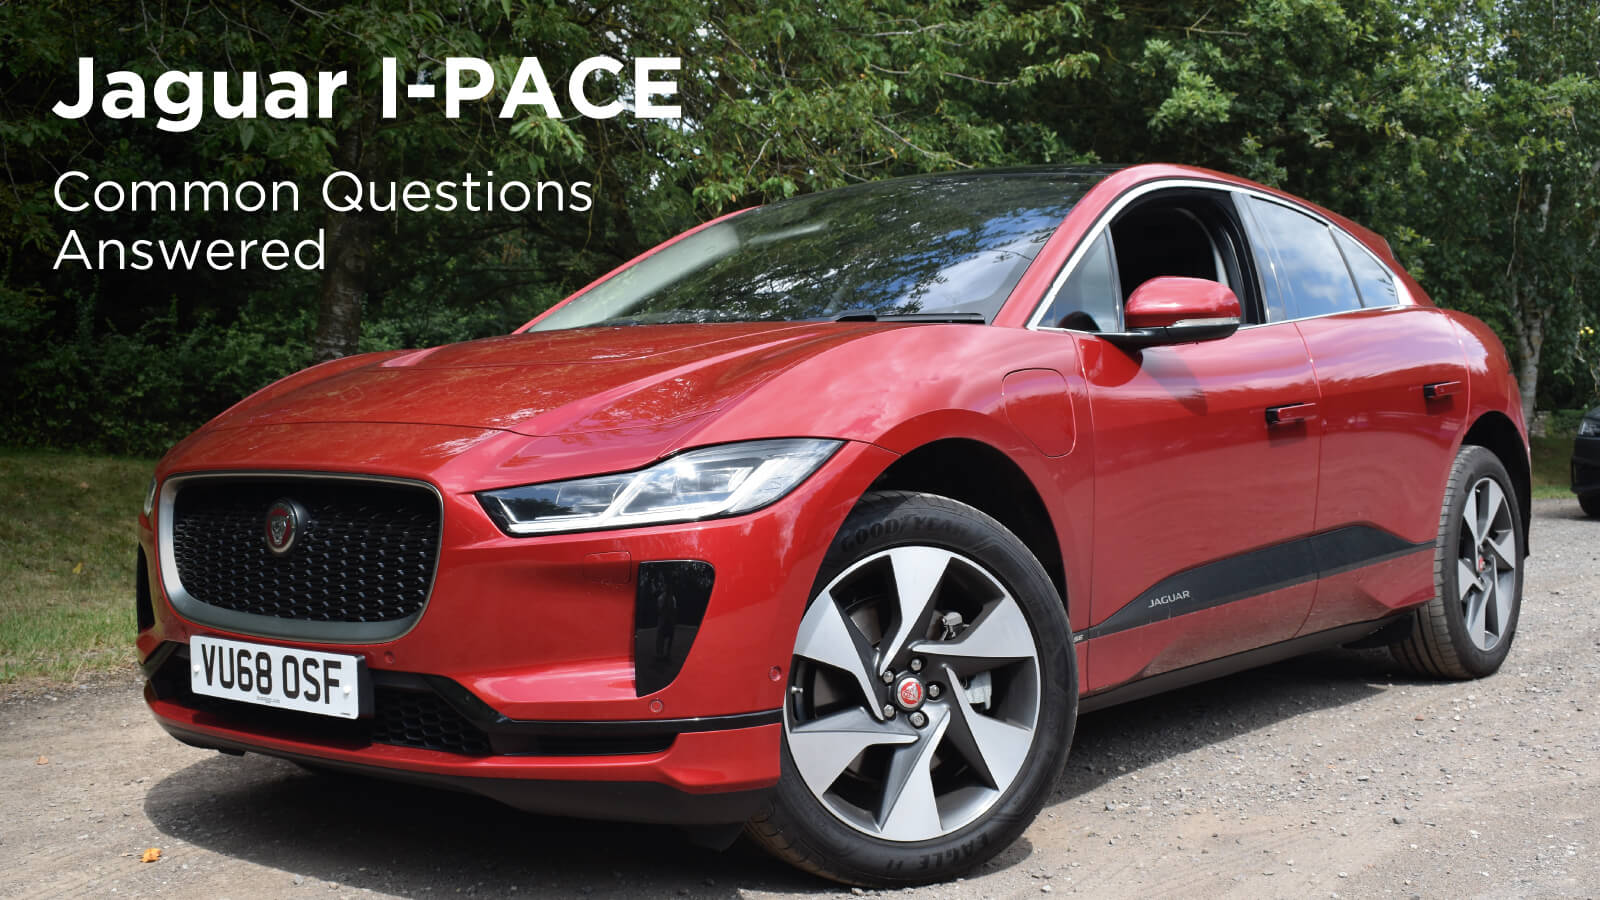 Red Jaguar I-PACE in Countryside